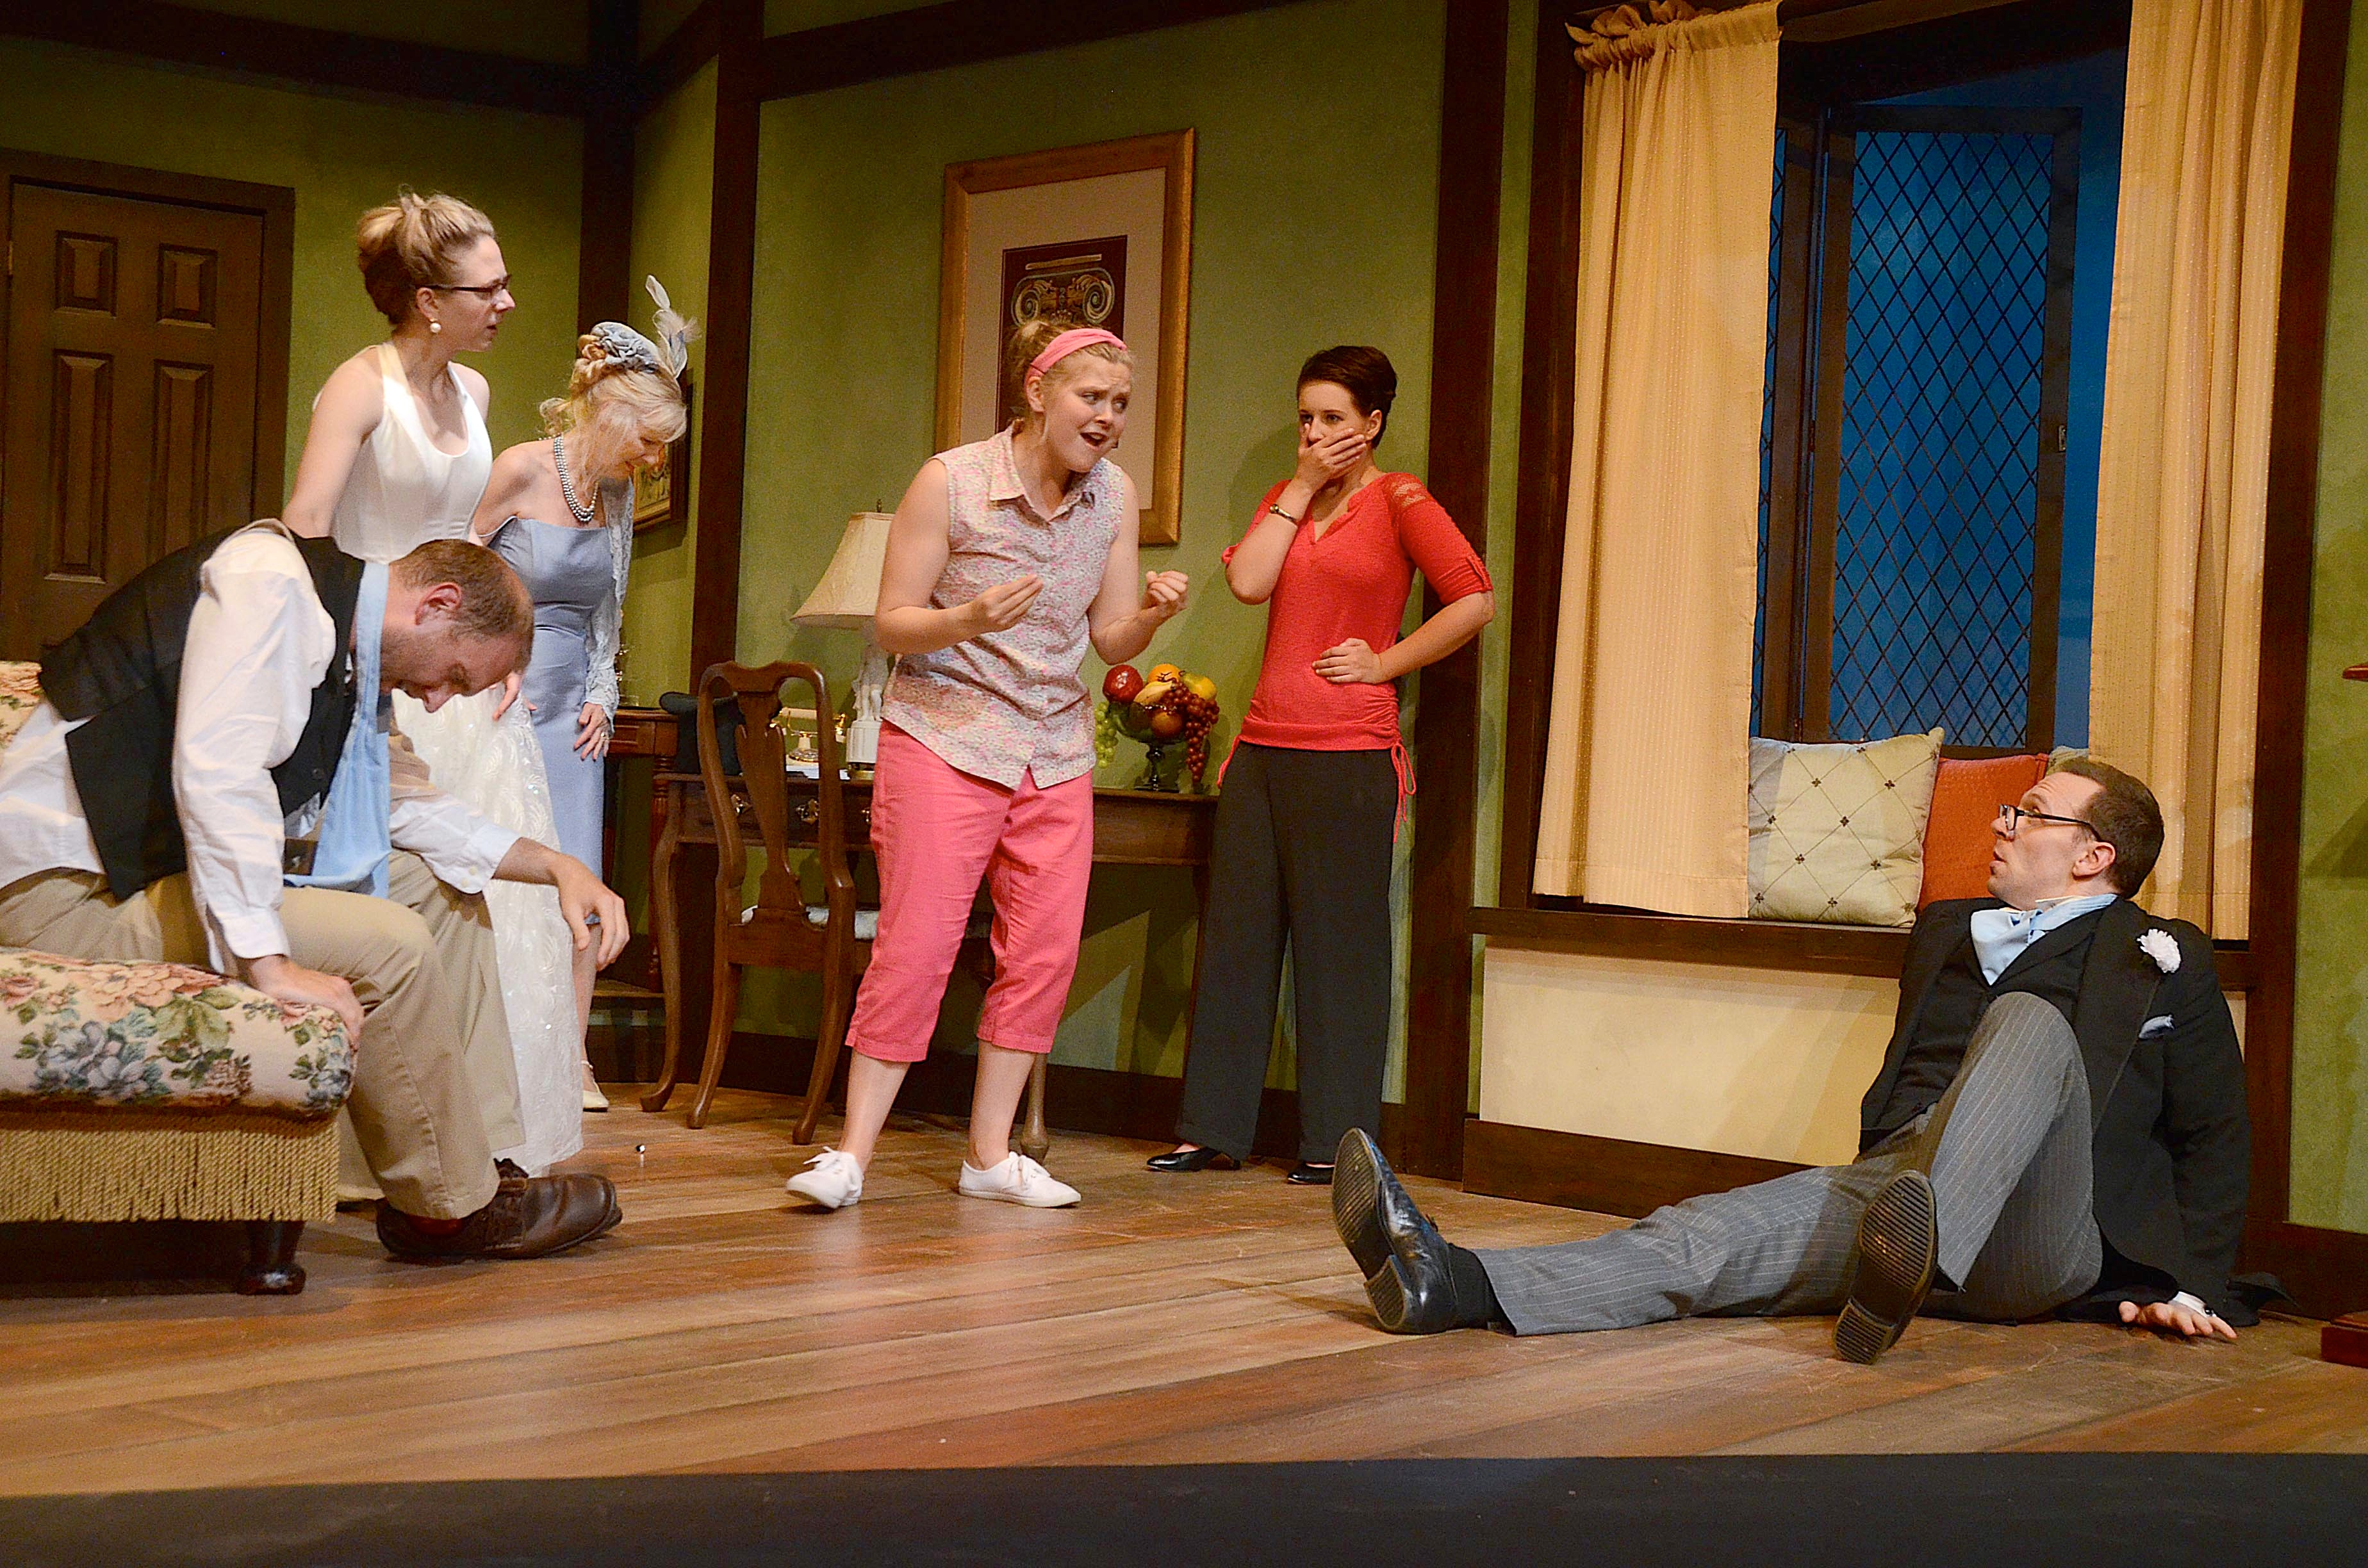 Perfect wedding? Of course not, when it's a fast-paced British farce onstage at the VLT